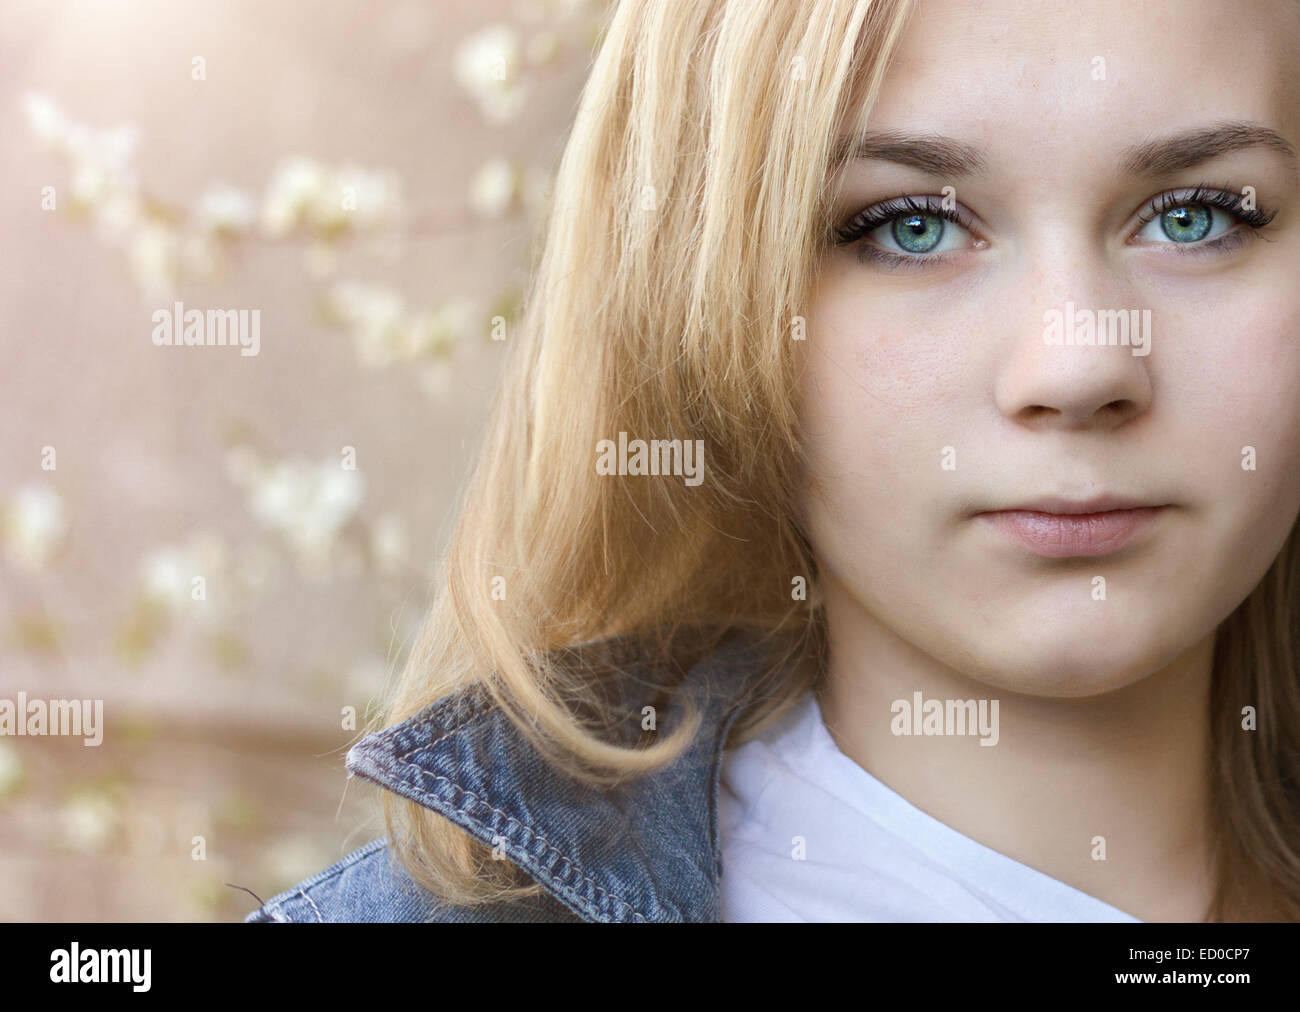 Girl (14-15) with blue eyes - Stock Image